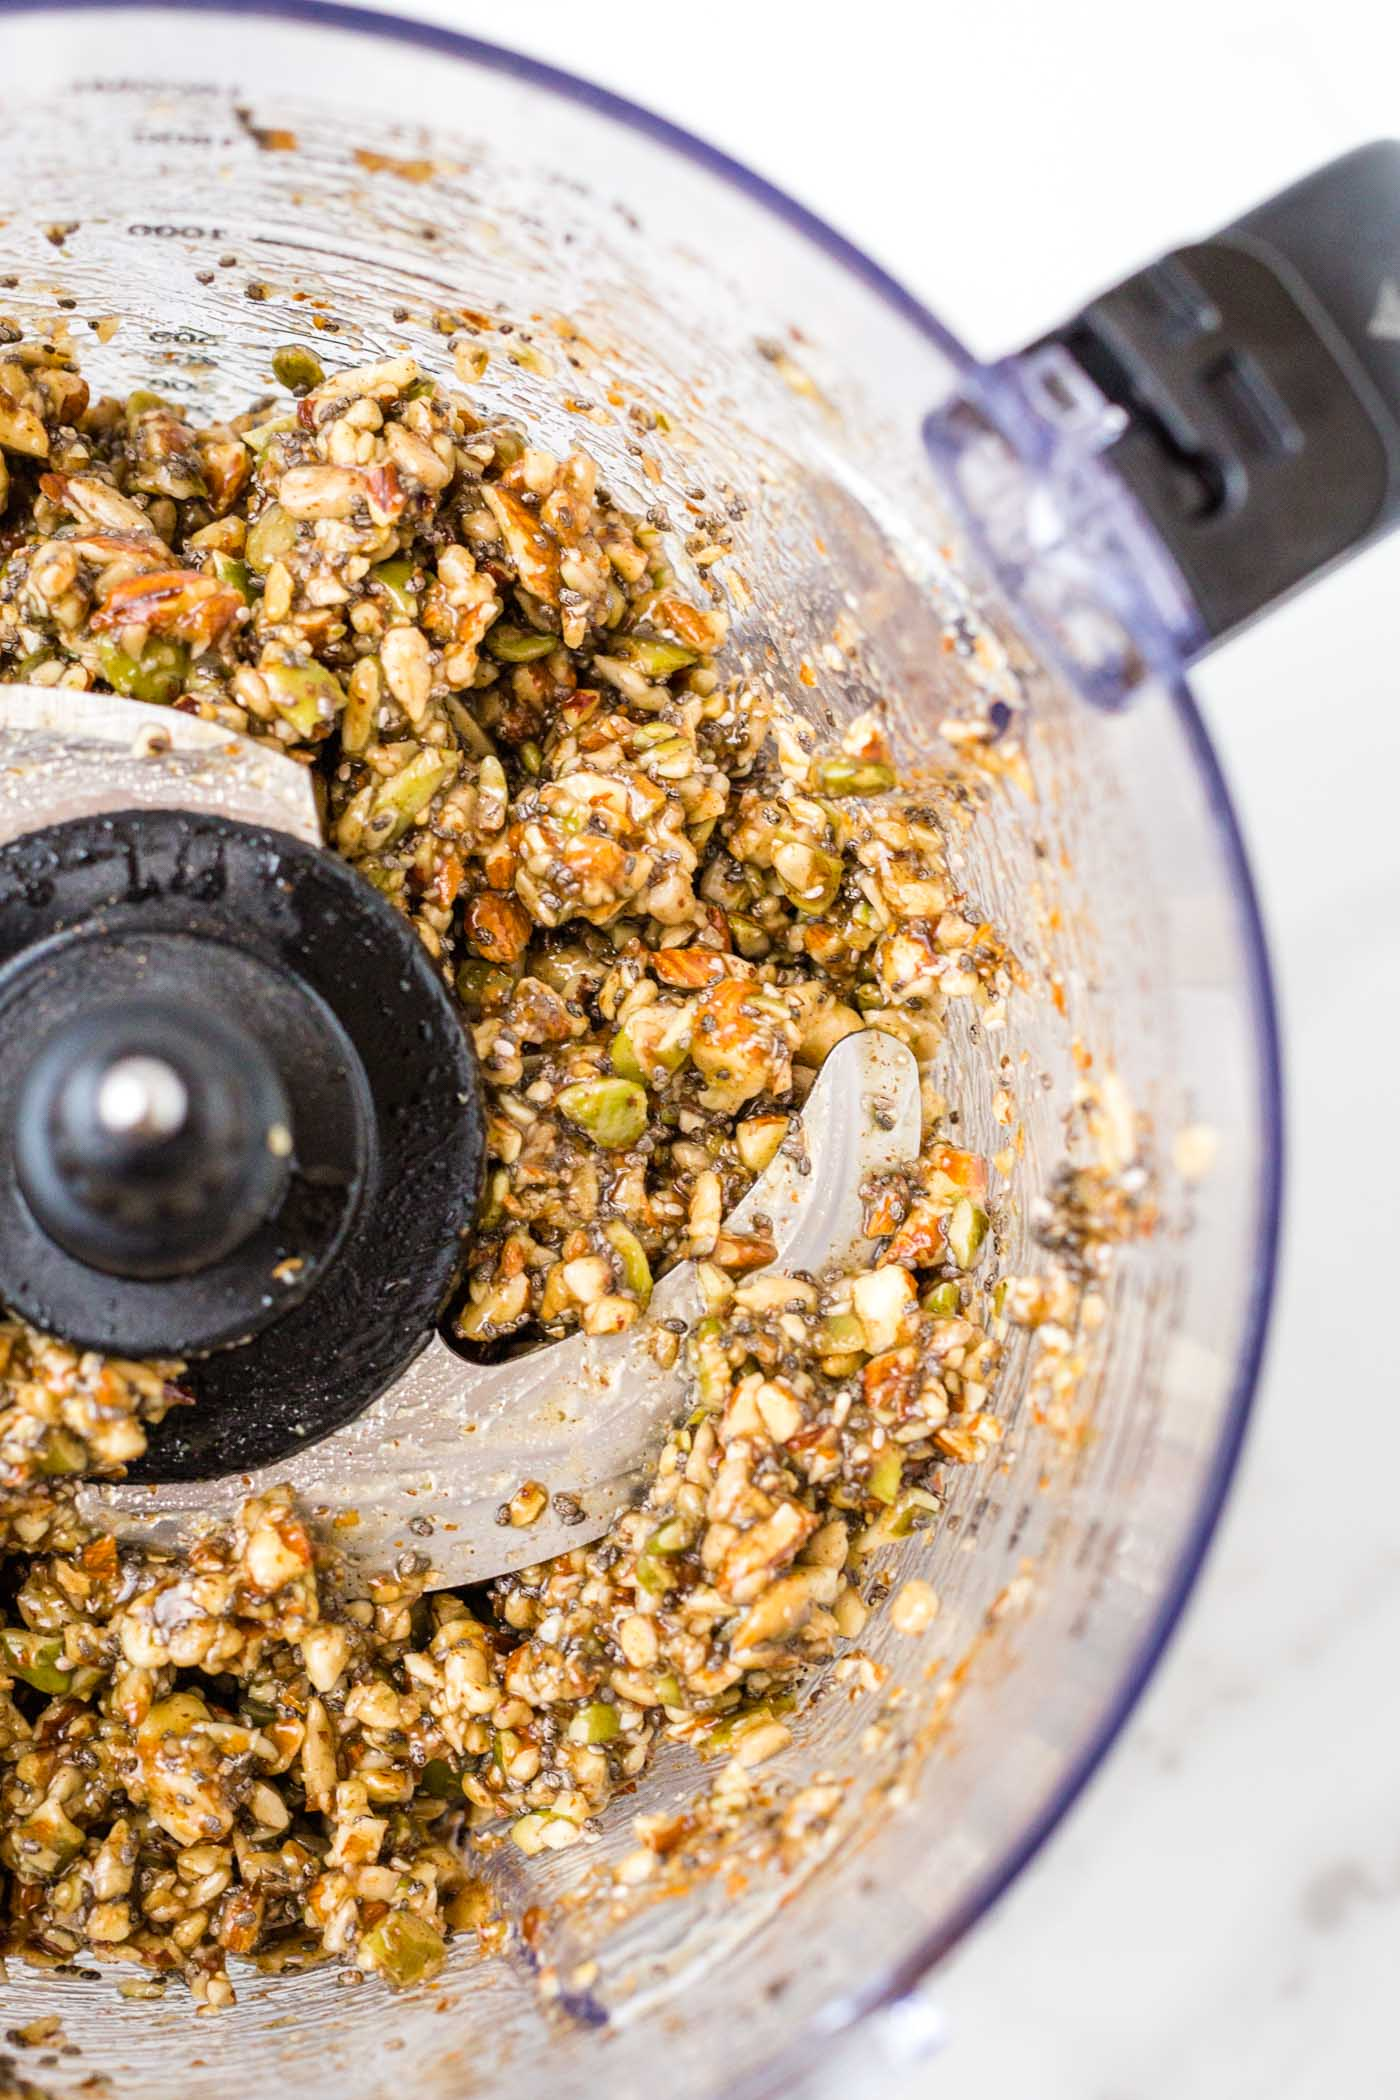 paleo granola chopped up in food processor